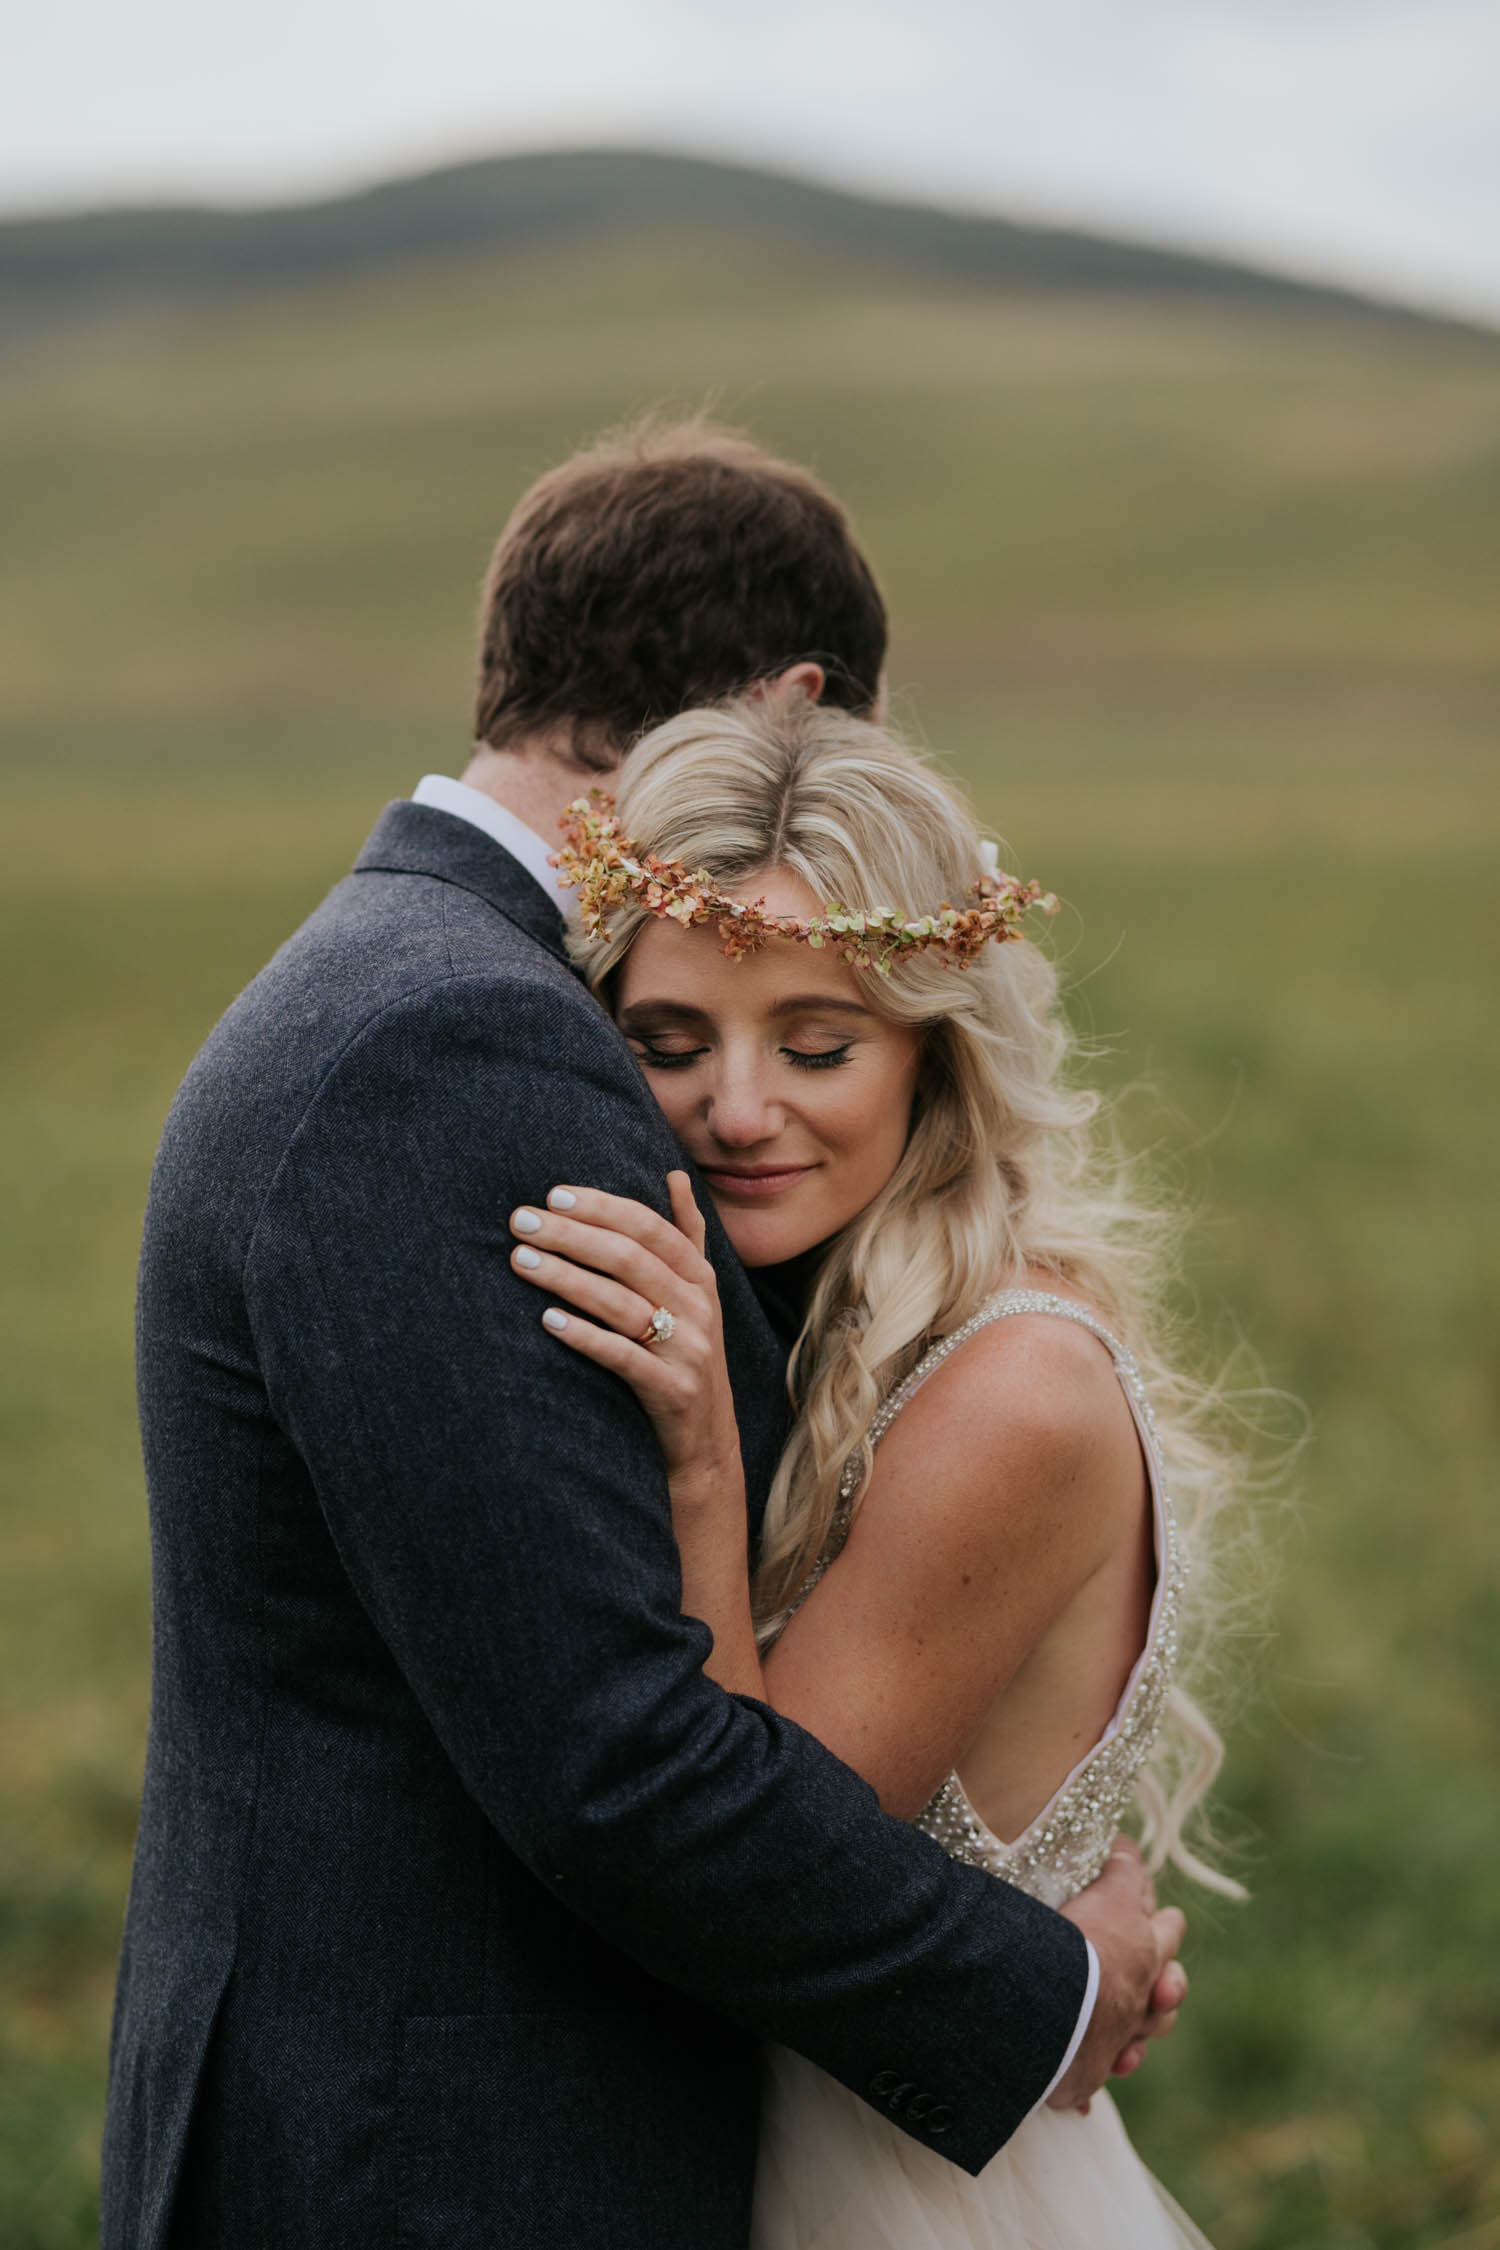 Candid moment of bride holding onto her groom. She is wearing a flower crown made up of dried flowers. Bride and groom surrounded by green hills and fields at a farm wedding venue in the Natal Midlands.